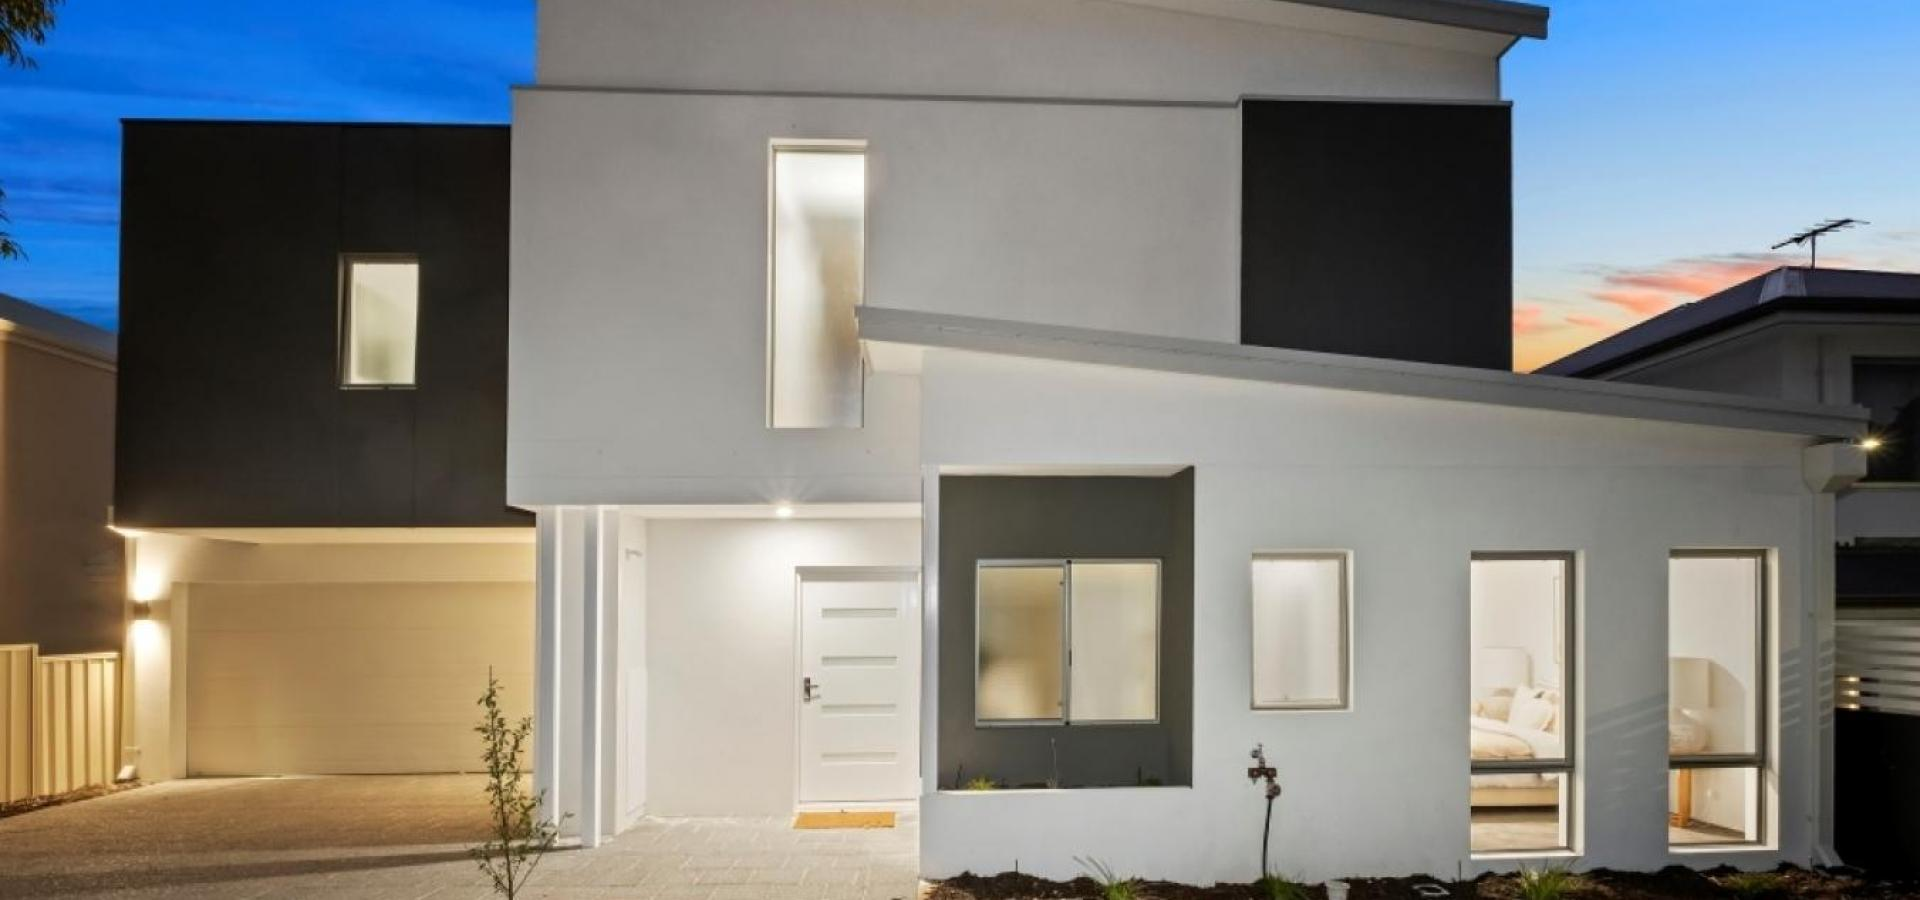 BRAND NEW LUXURY TOWNHOUSE - EMAIL TO PRE-REGISTER FOR VIEWING